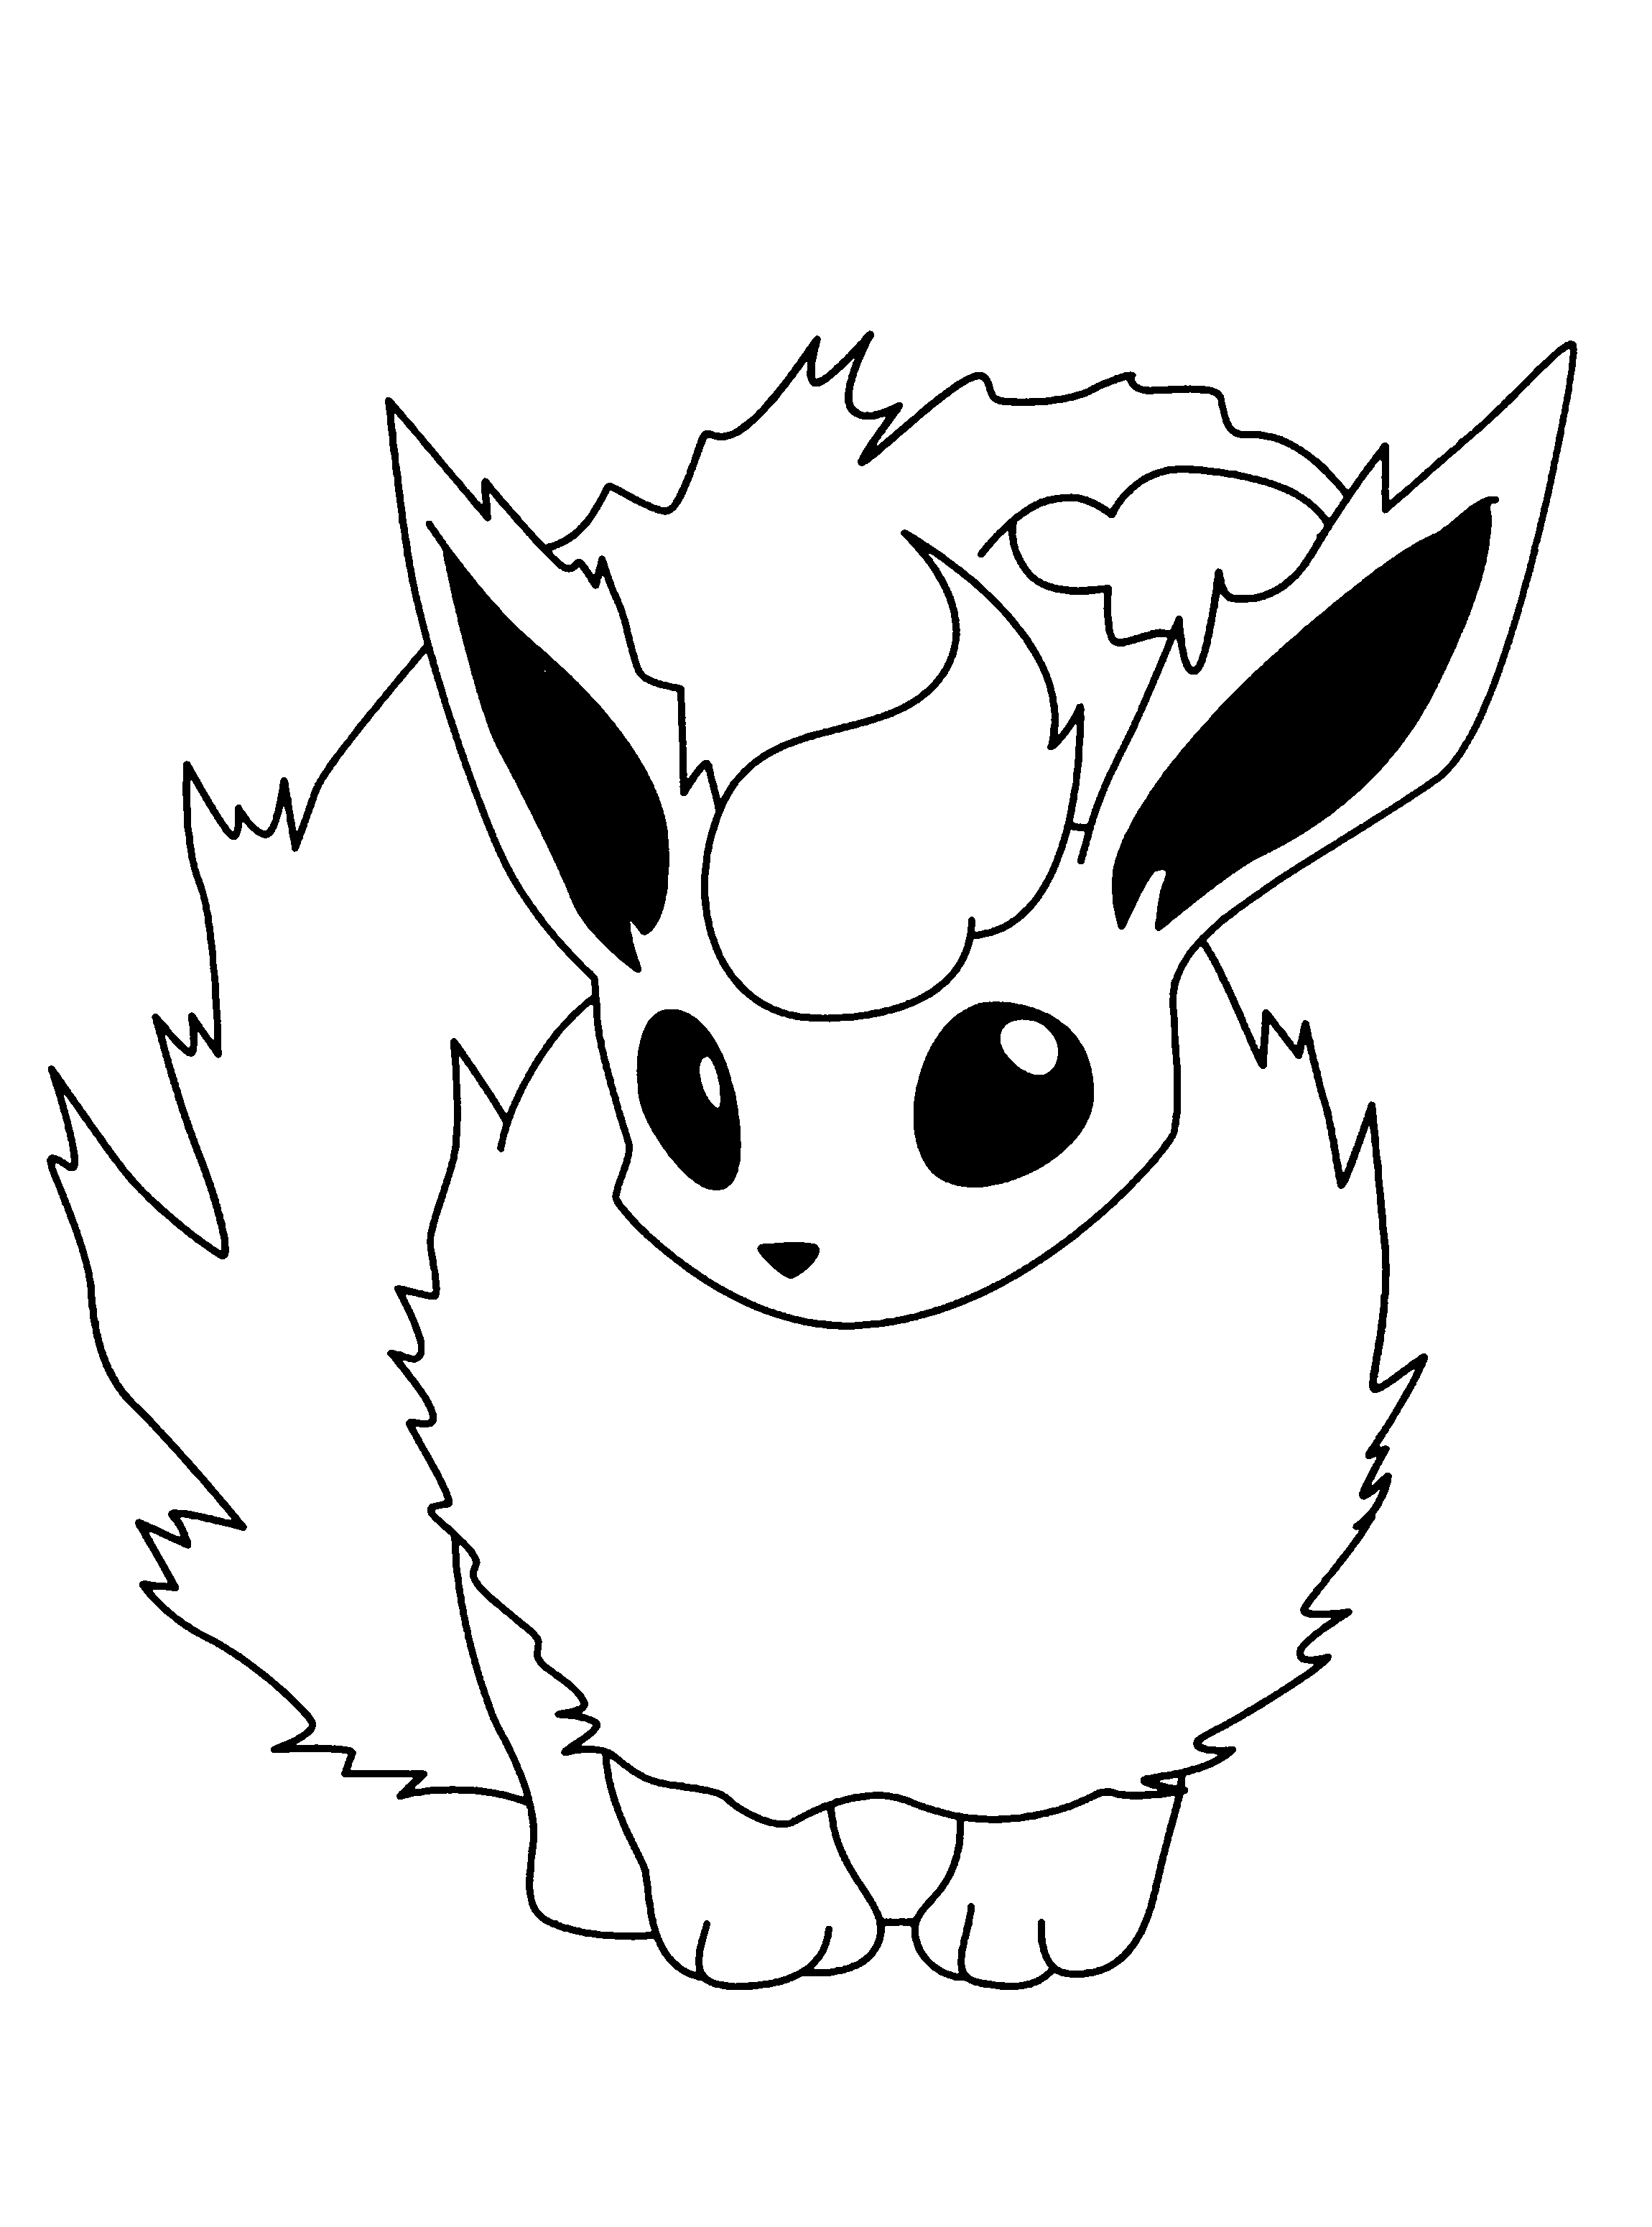 pokemon colouring in pictures pokemon coloring pages join your favorite pokemon on an colouring pictures pokemon in